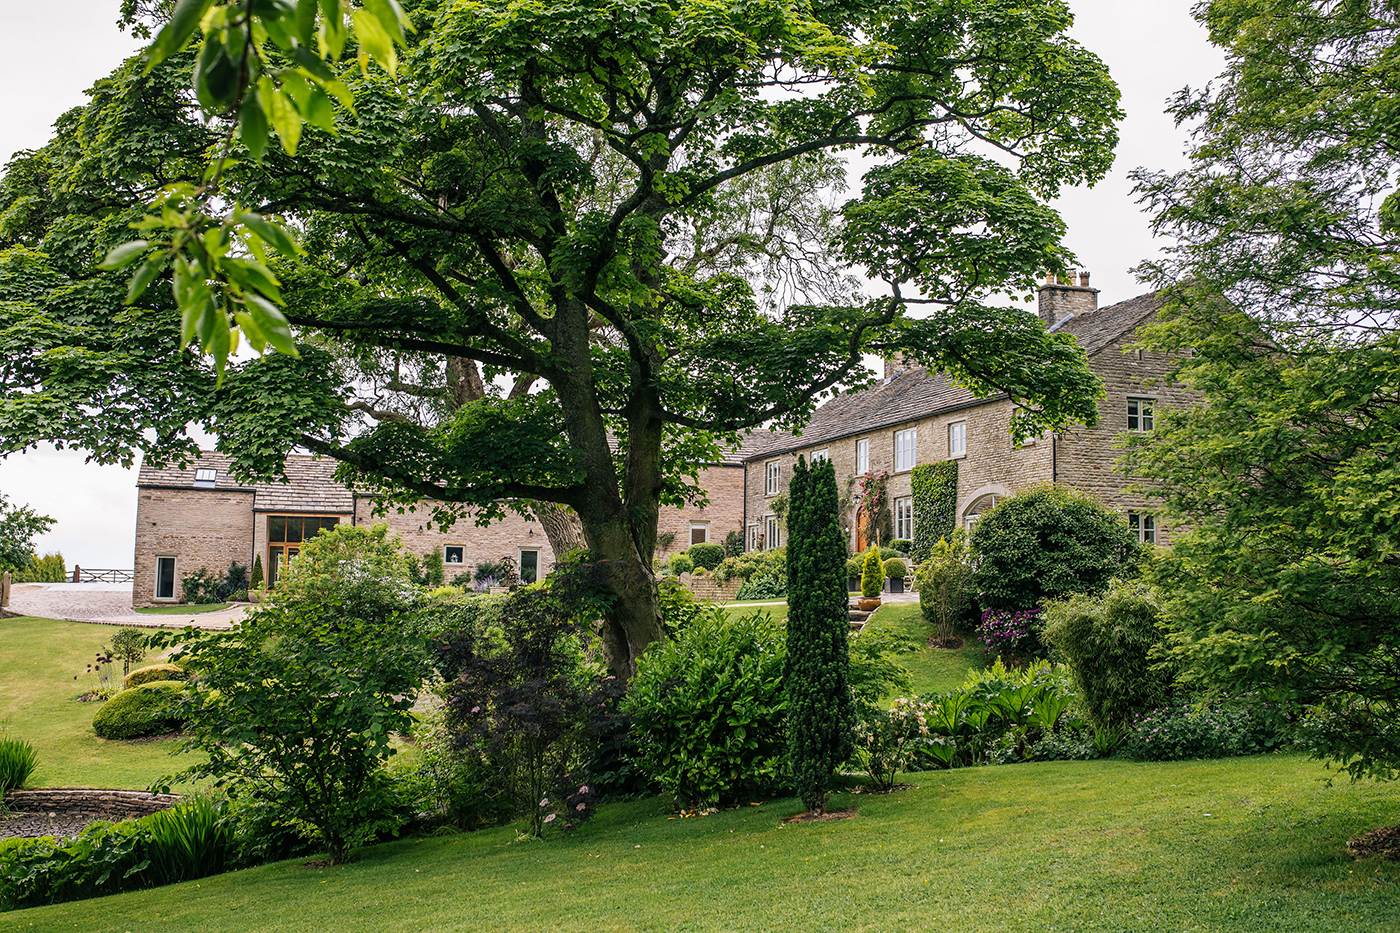 Further Harrop Farm - executive retreat and self-catering cottages in Peak District